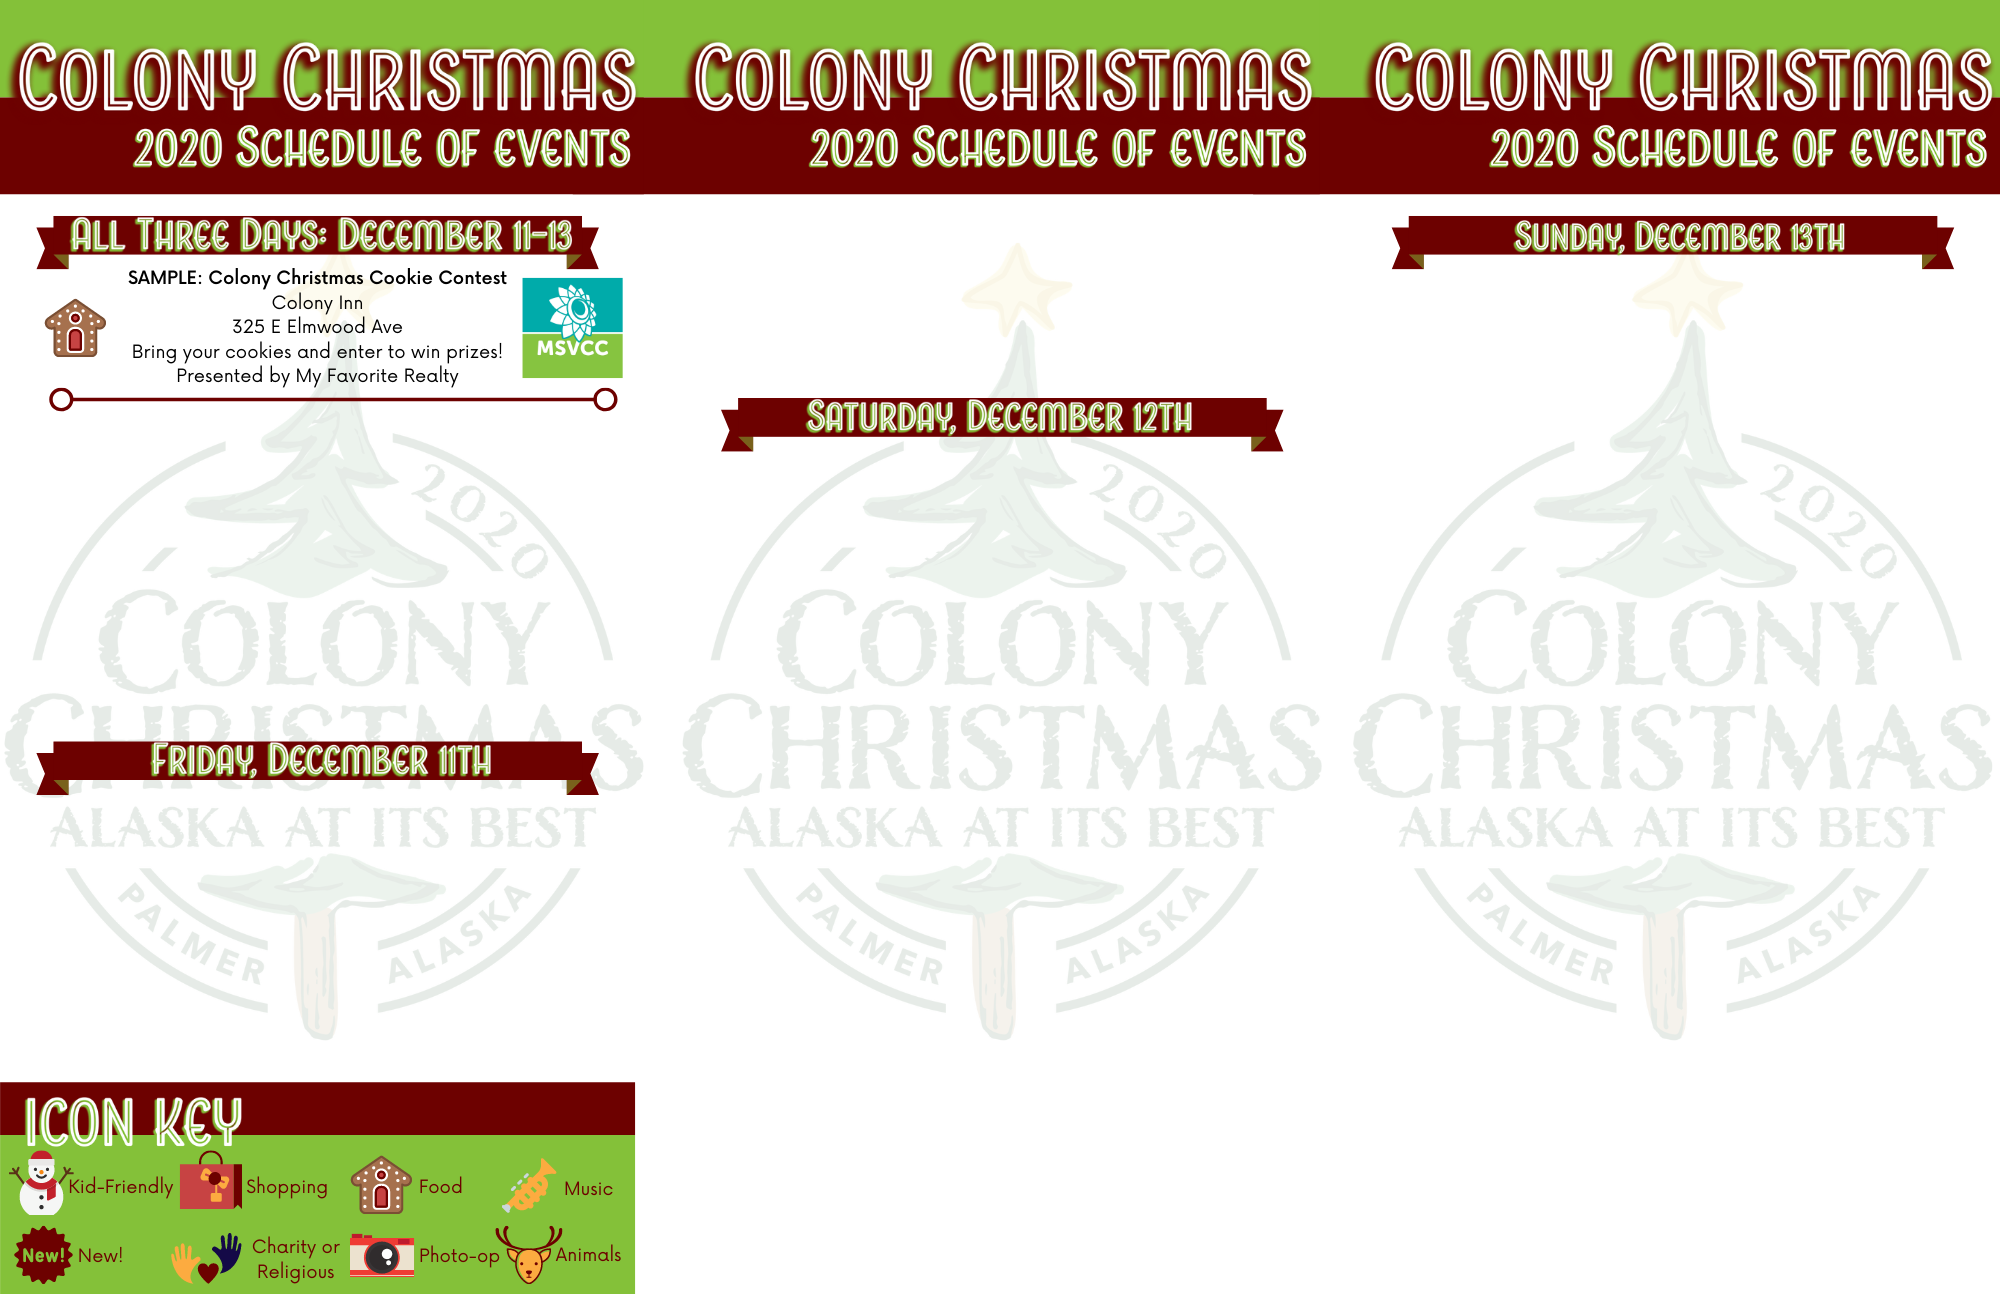 Colony Christmas 2020 Schedule of Events